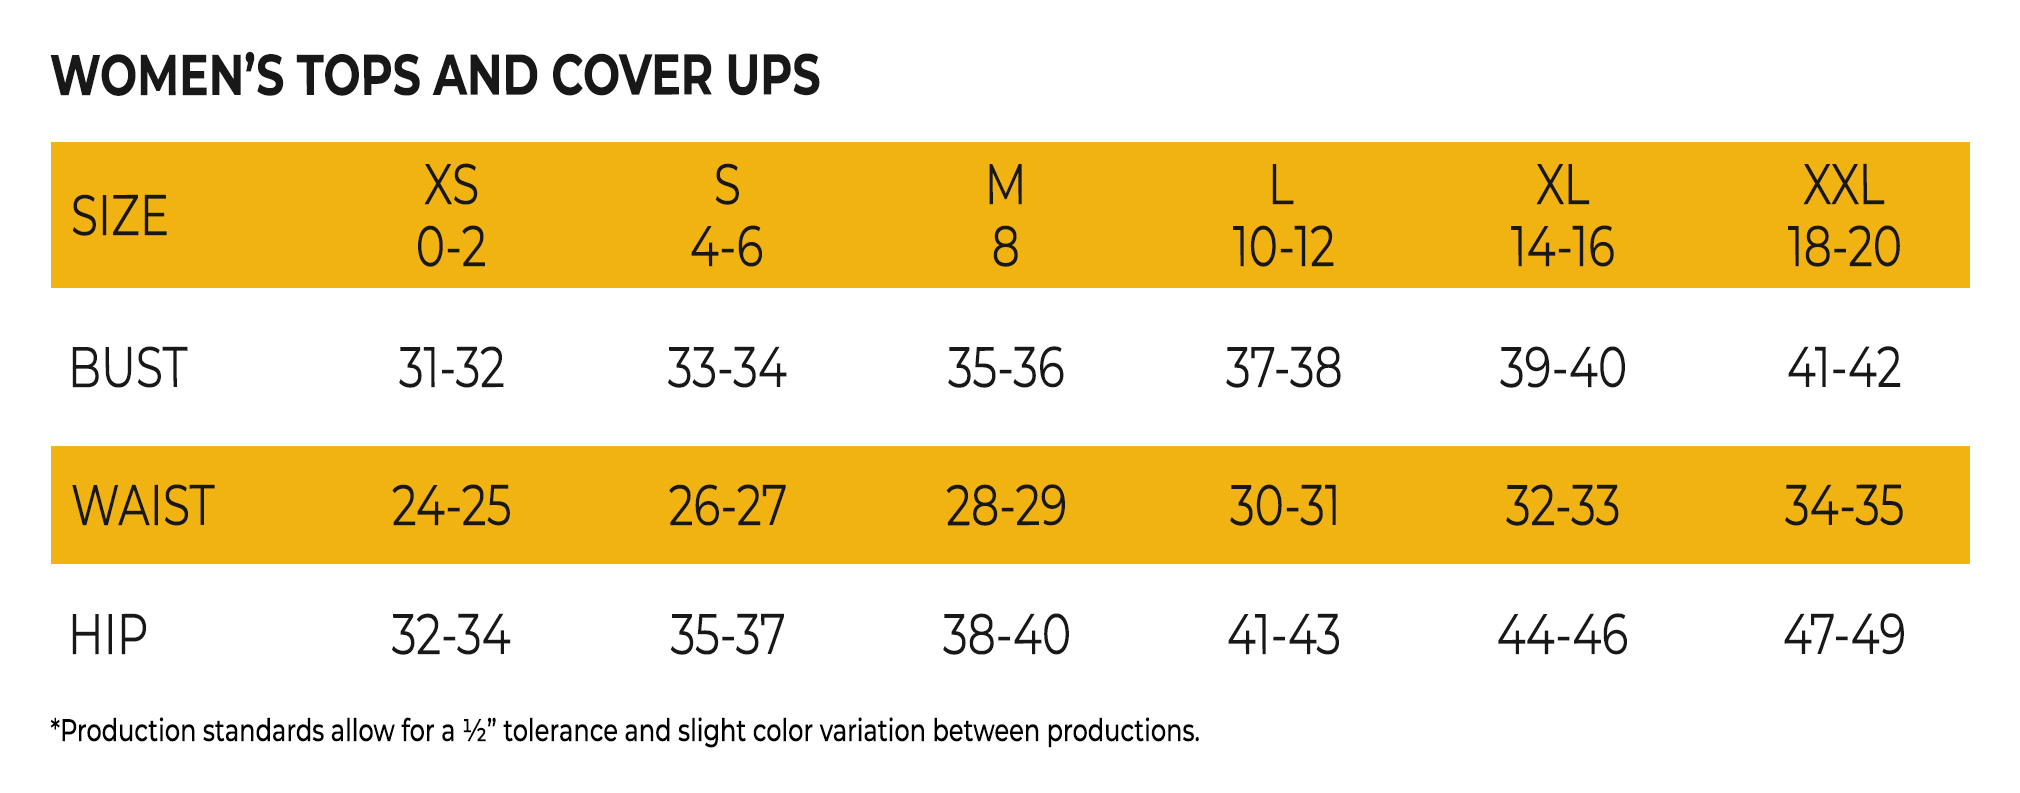 women-s-tops-and-cover-ups-size-chart.jpg